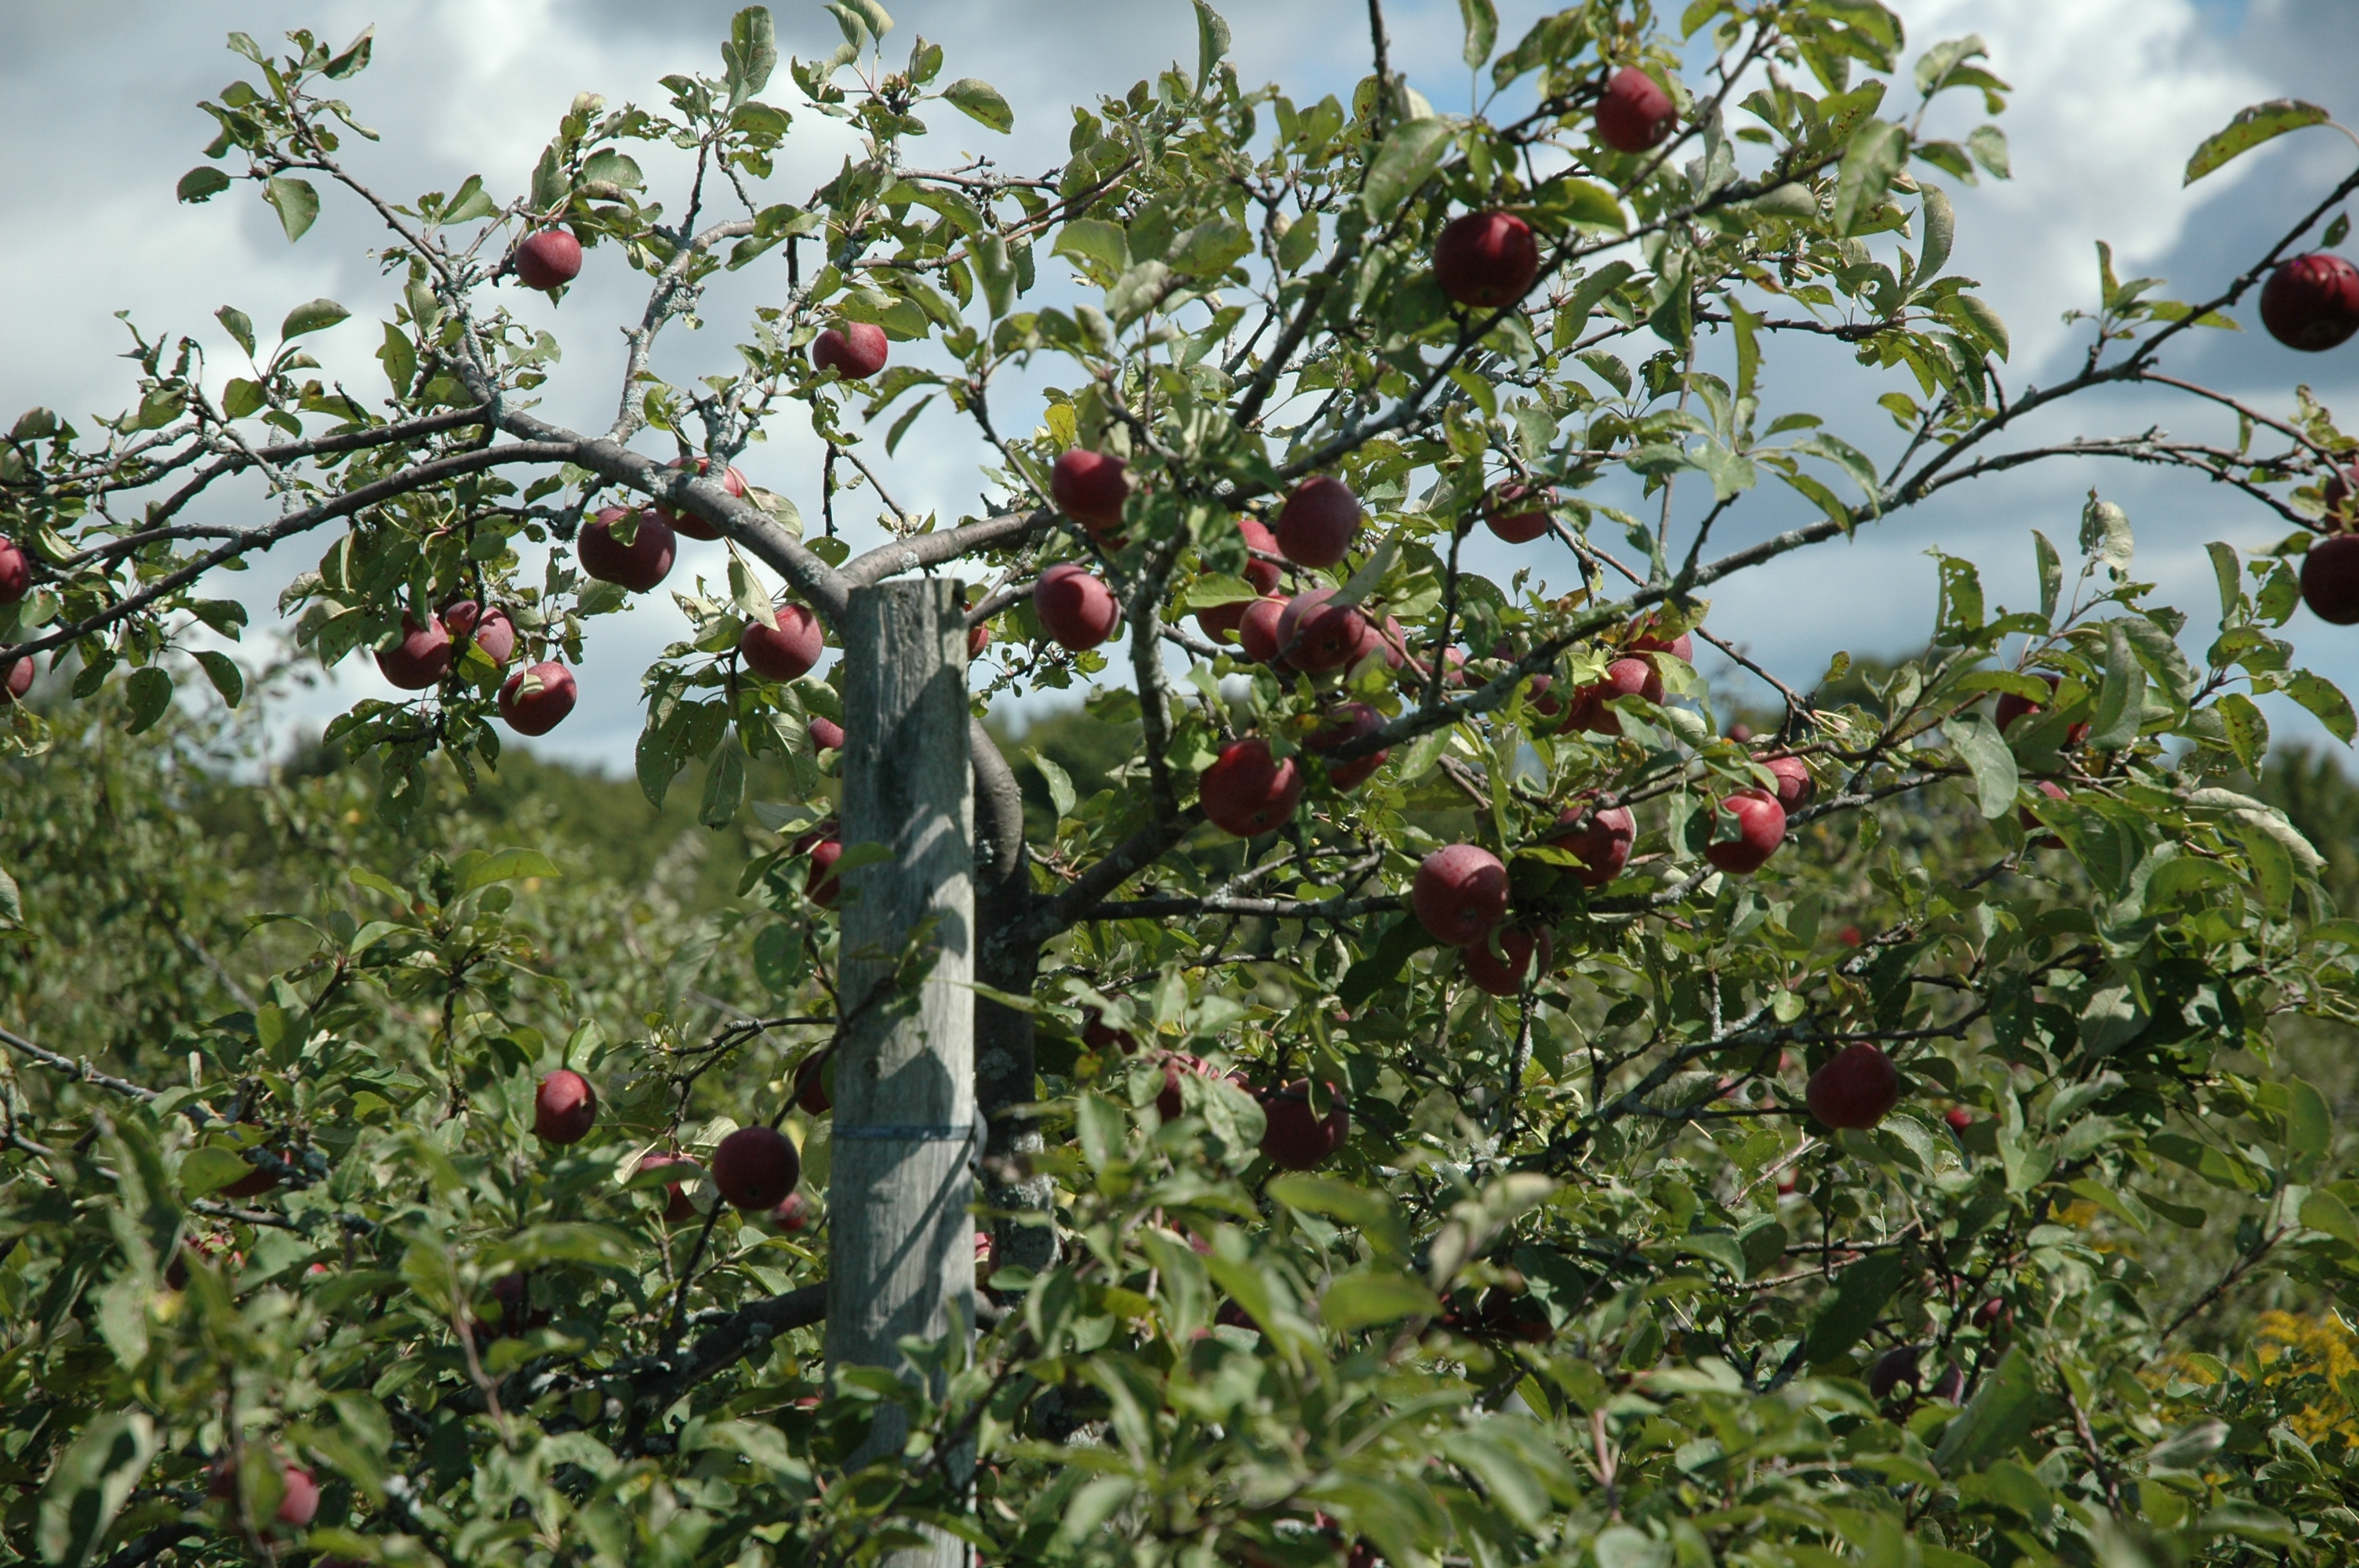 A Review of Avalon Orchard –  An Organic pick-your-own Apple Orchard